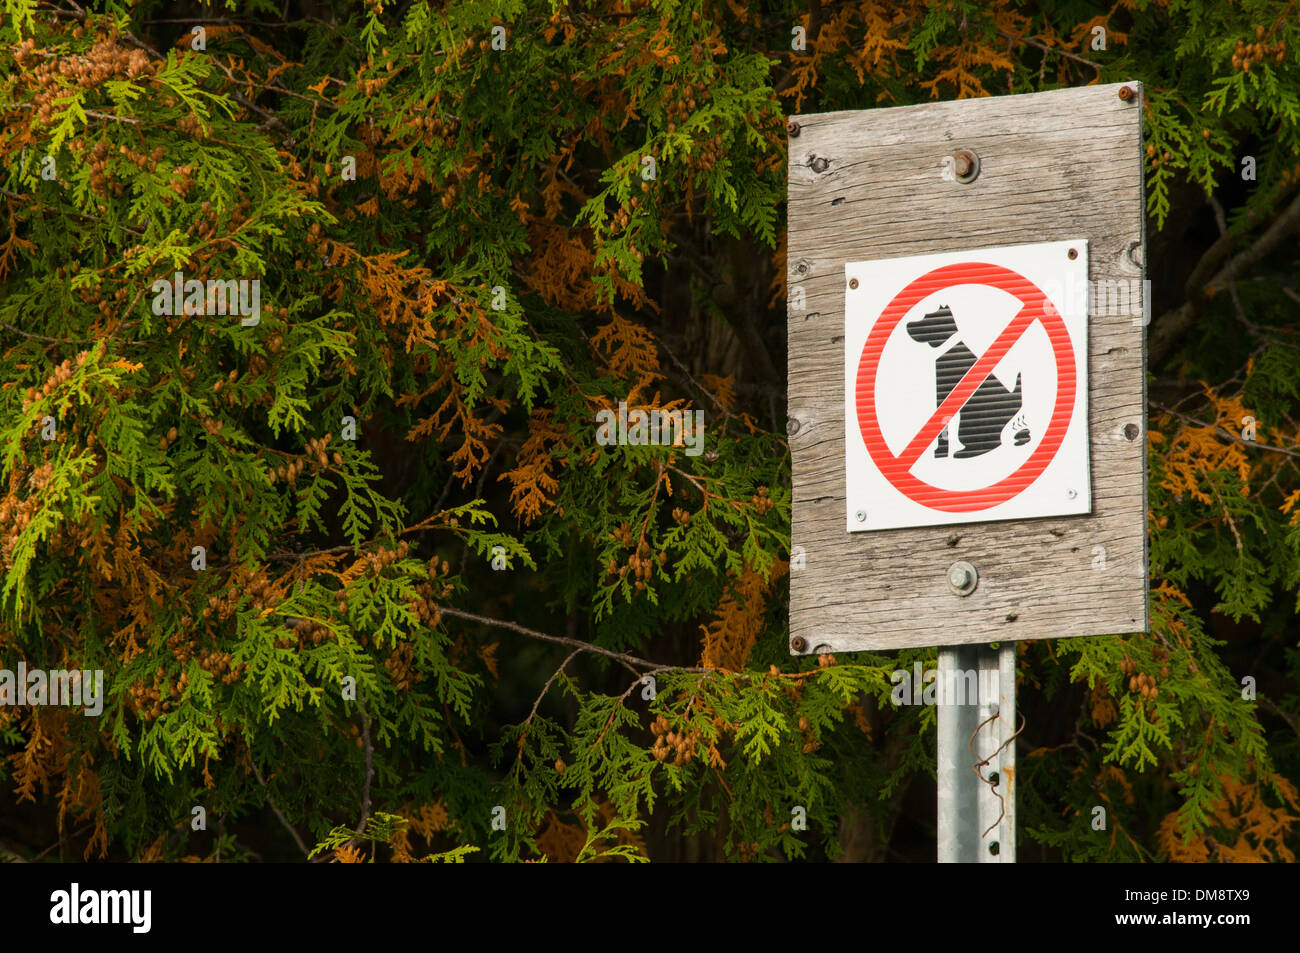 Sign for no dog littering - Stock Image